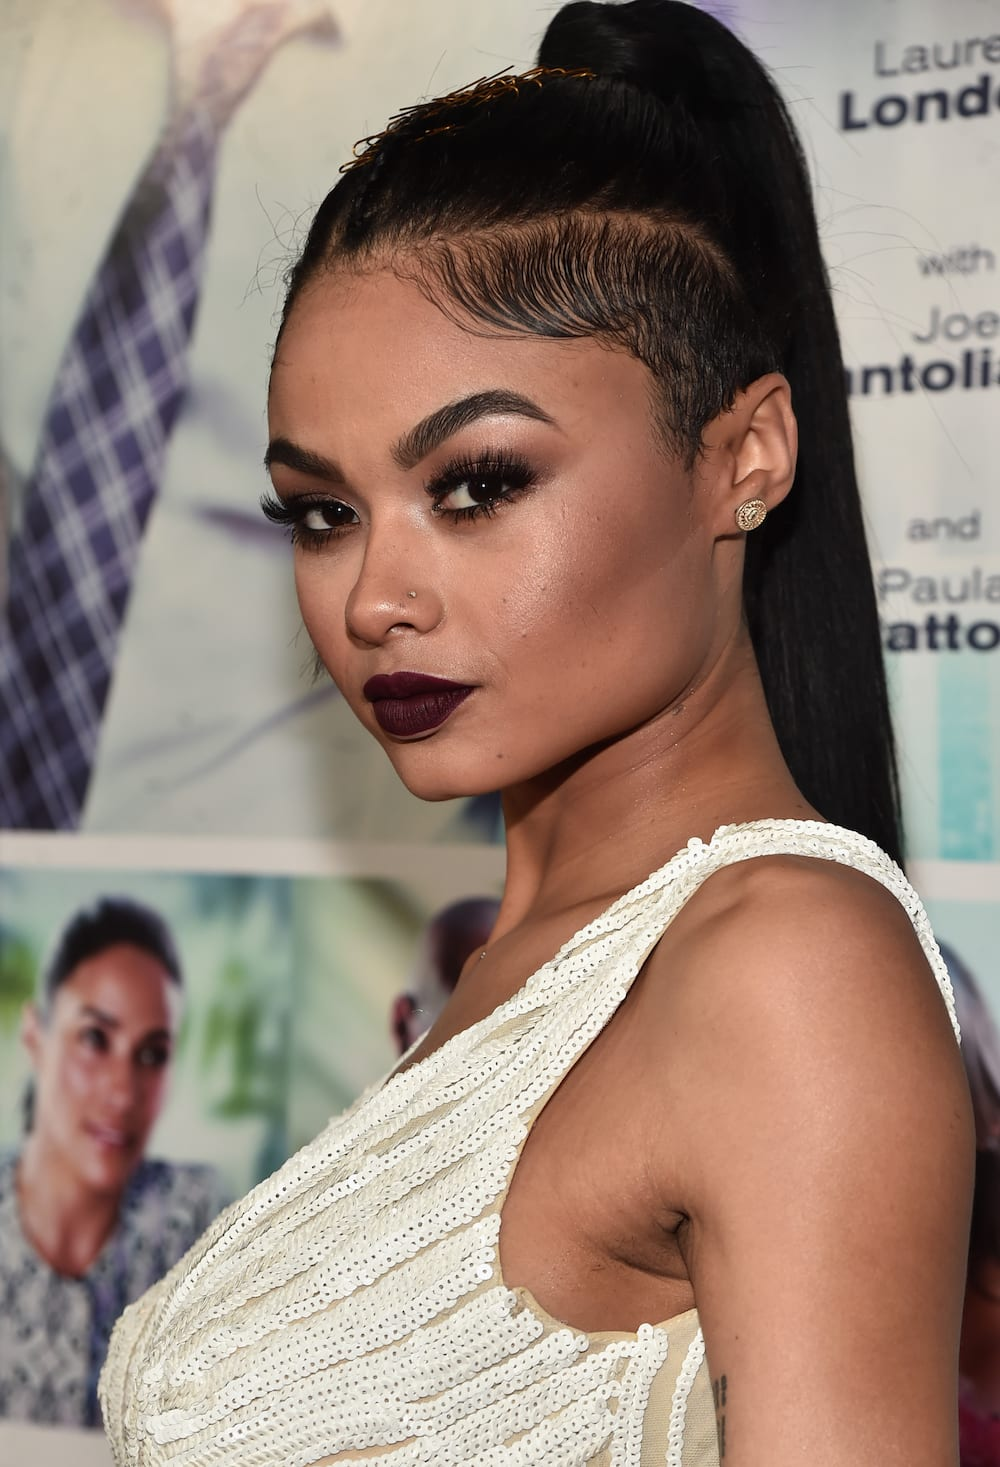 Who is India Love